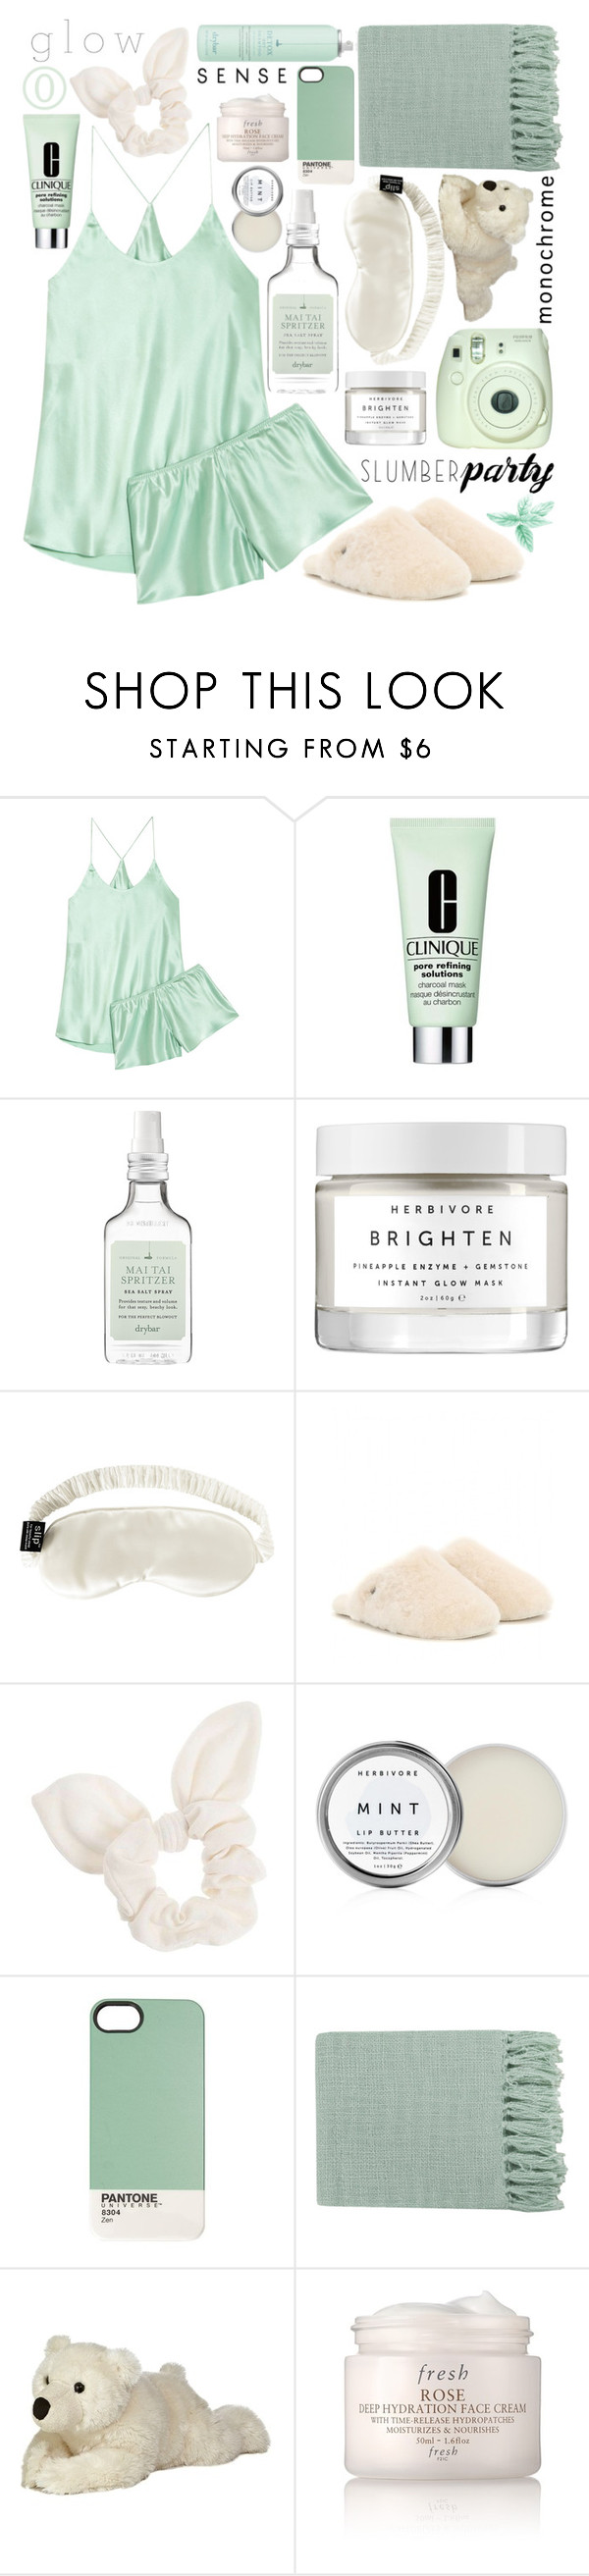 """Slumber Party: Contest Entry"" by isquaglia ❤ liked on Polyvore featuring Olivia von Halle, Clinique, Drybar, Herbivore, Slip, UGG Australia, Dorothy Perkins, Surya, Fresh and slumberparty"